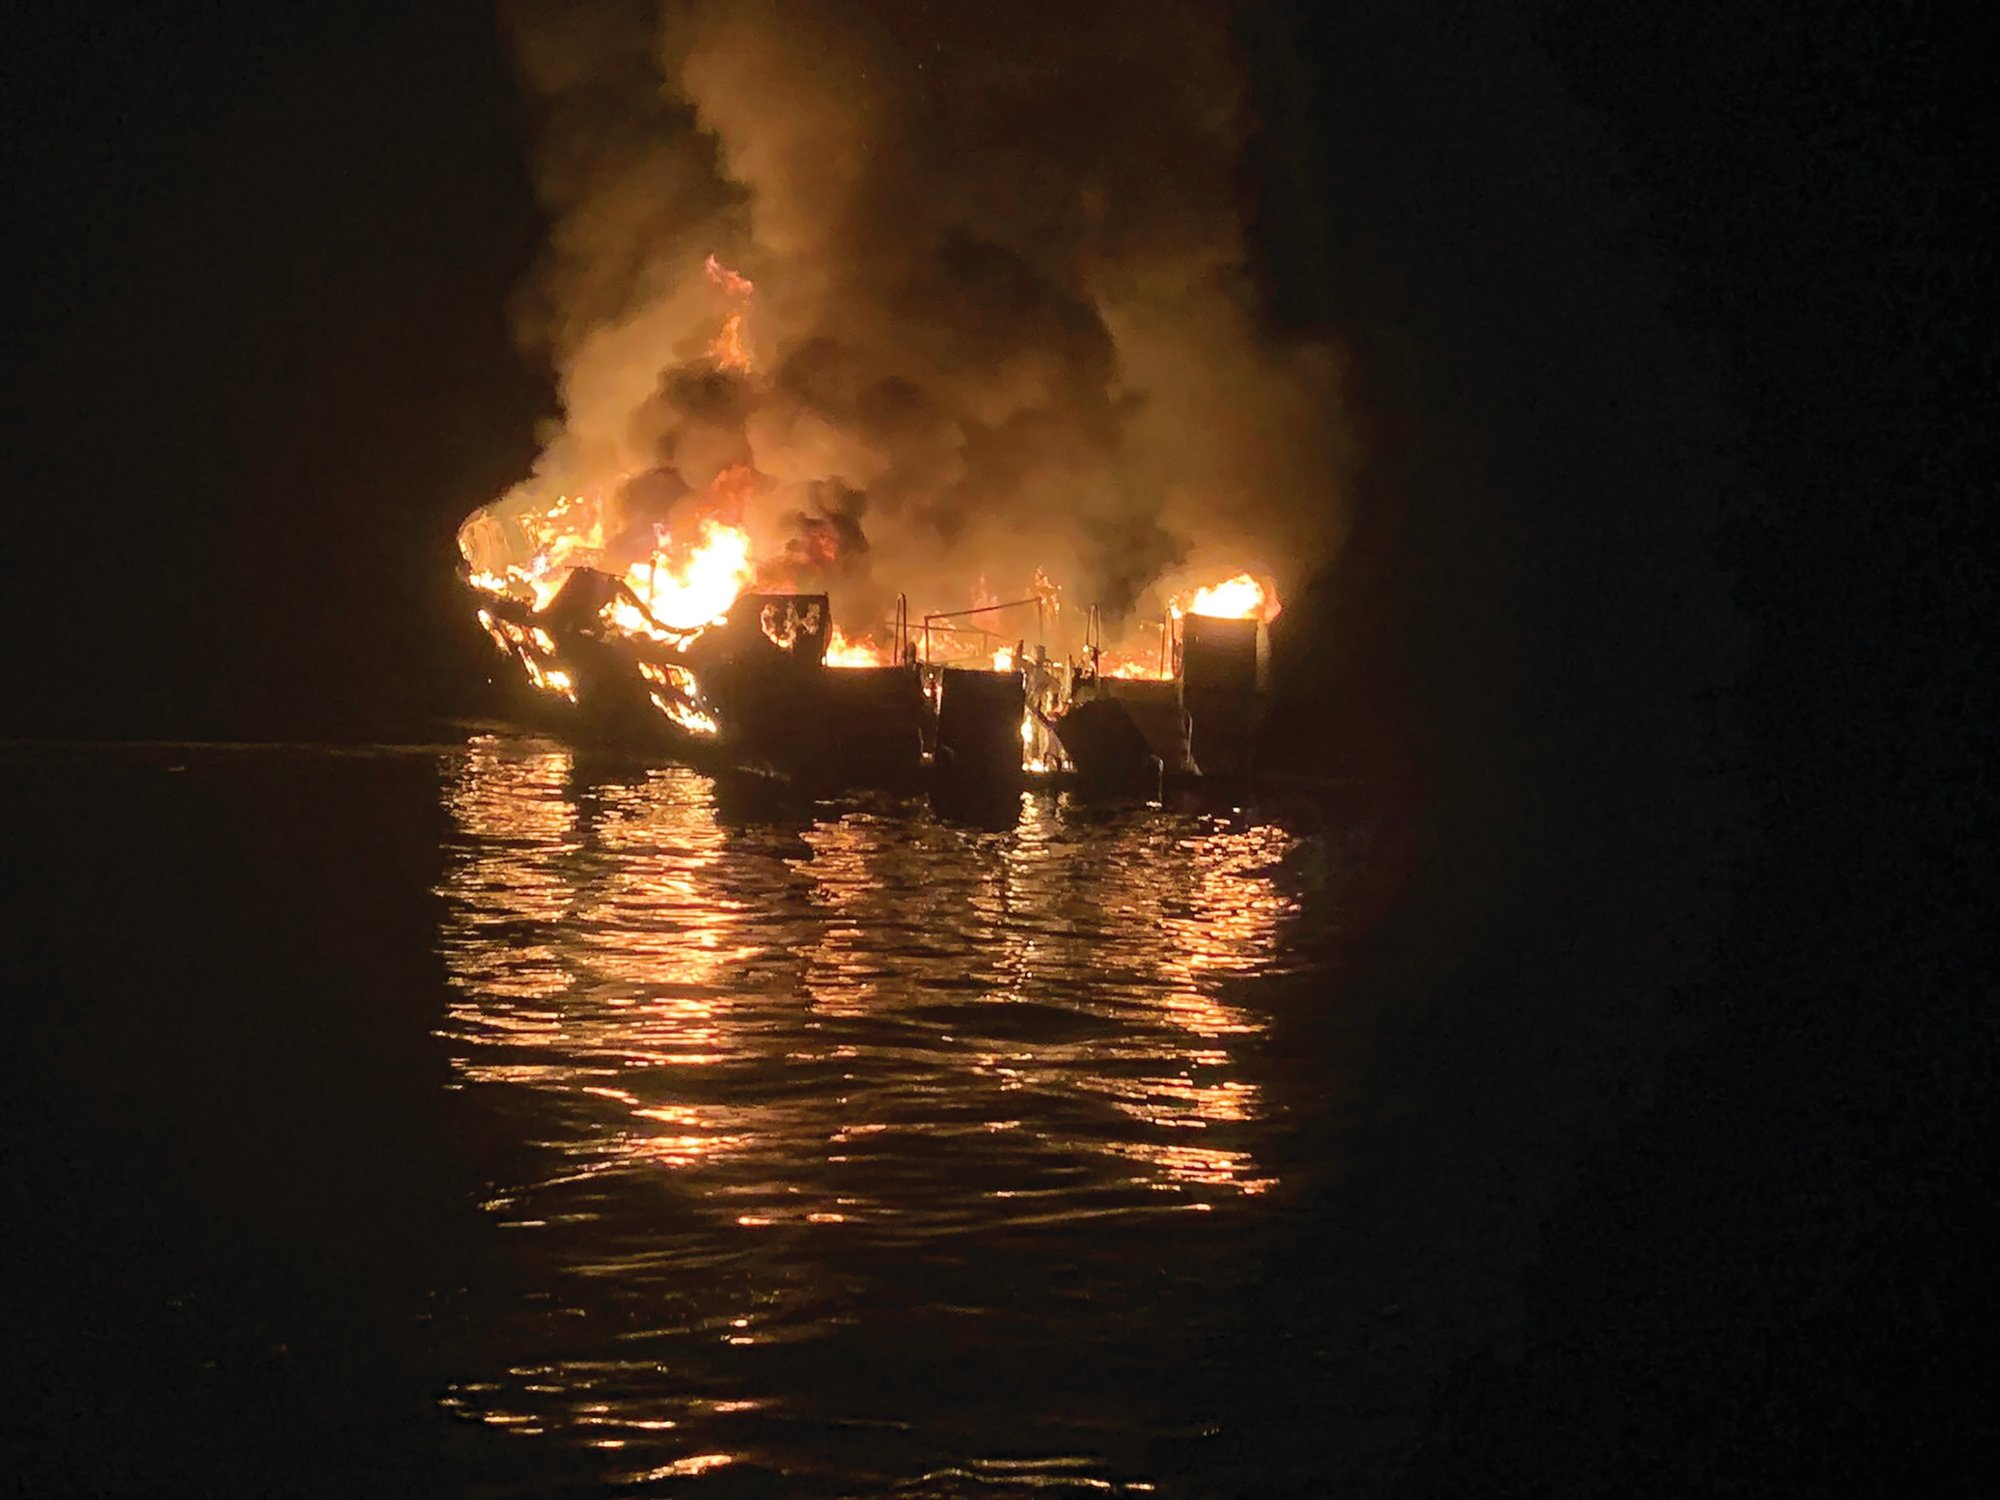 Santa Barbara County Fire Department via APA dive boat is engulfed in flames after a deadly fire broke out aboard the commercial scuba diving vessel off the Southern California Coast, Monday morning, Sept. 2, 2019.